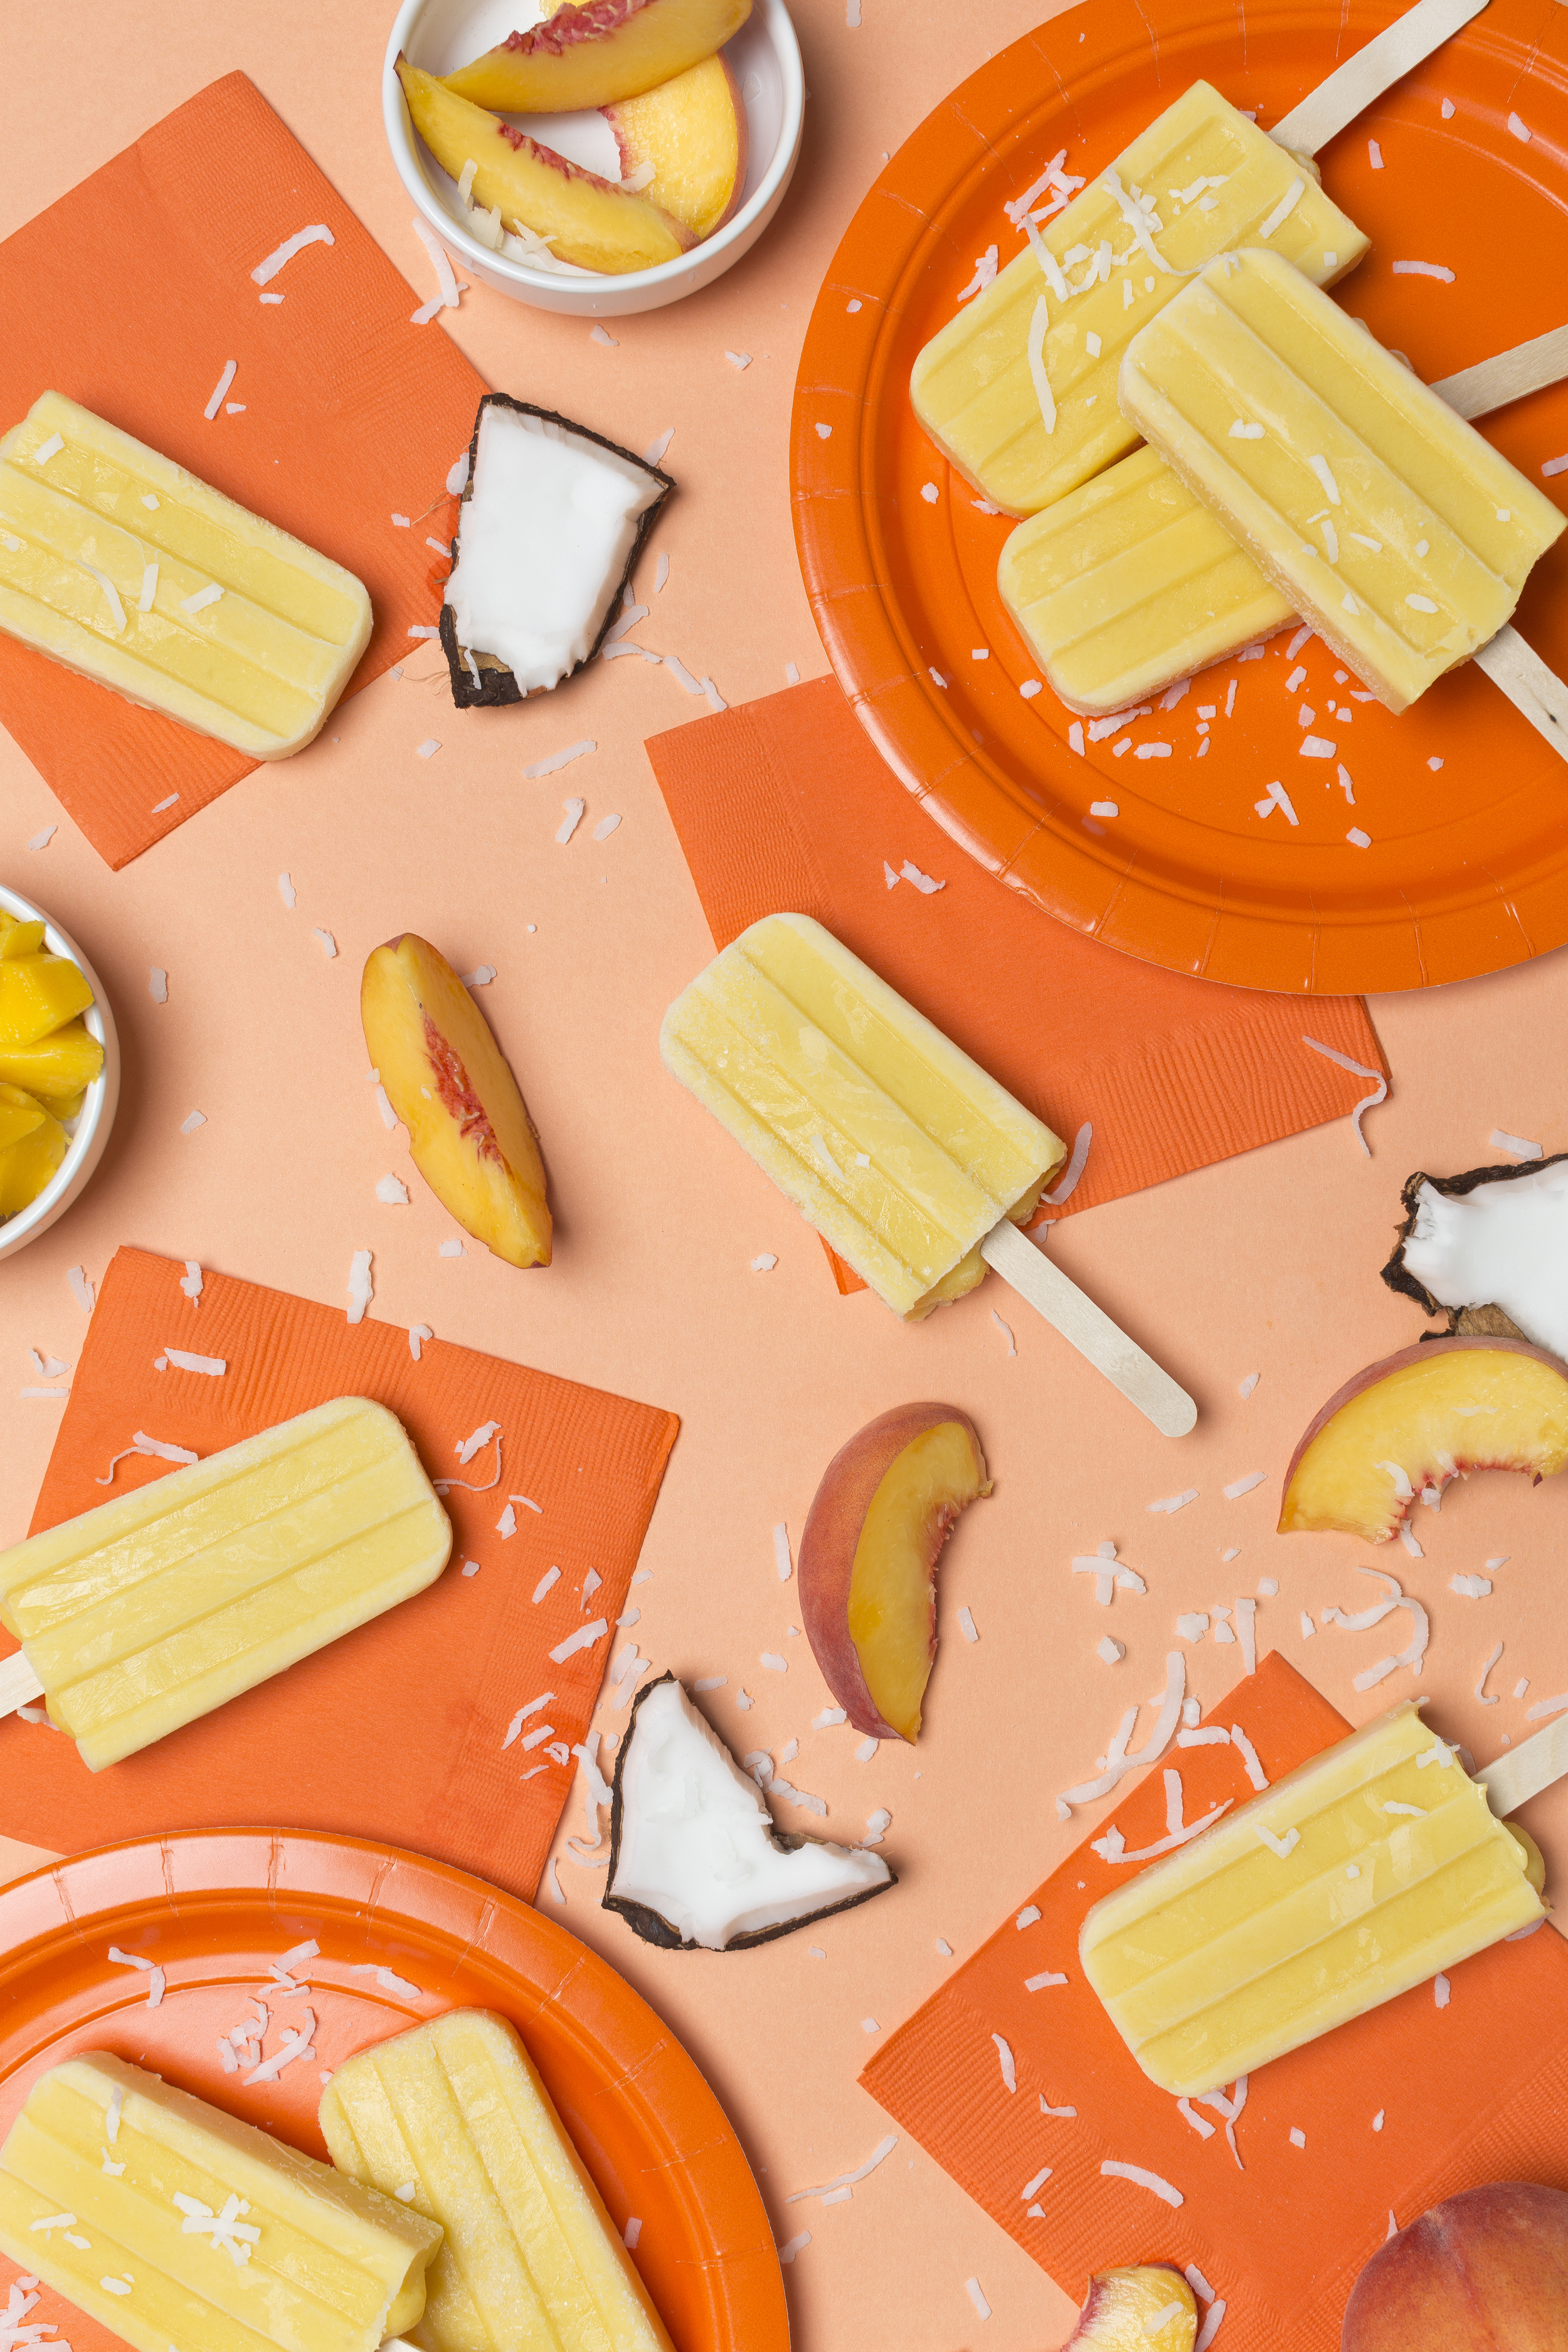 Hellooo!! We are home from Alaska, and back to real life... Meaning.. Back to a freezer full of colourful popsicles! I super love this popsicle! If you love mangos, you will super love this popsicle too! 🍑       Peach Mango Coconut-   3 Peeled Peaches   2 Peeled Mangos   1/4C sugar   400ml can of coconut milk       Cut fruits, add all ingredients to a pot, and bring to a boil. Let boil for 2-3 min. Then bring the boil down to a simmer. Let mixture simmer for 10 min. Let cool. Blend mixture. Fill molds, freeze, enjoy!   This is part of  @houselarsbuilt  and my   #summerof1000popsicles   #popsicletherainbow  project! 😊 styling by the amazing  @houselarsbuilt